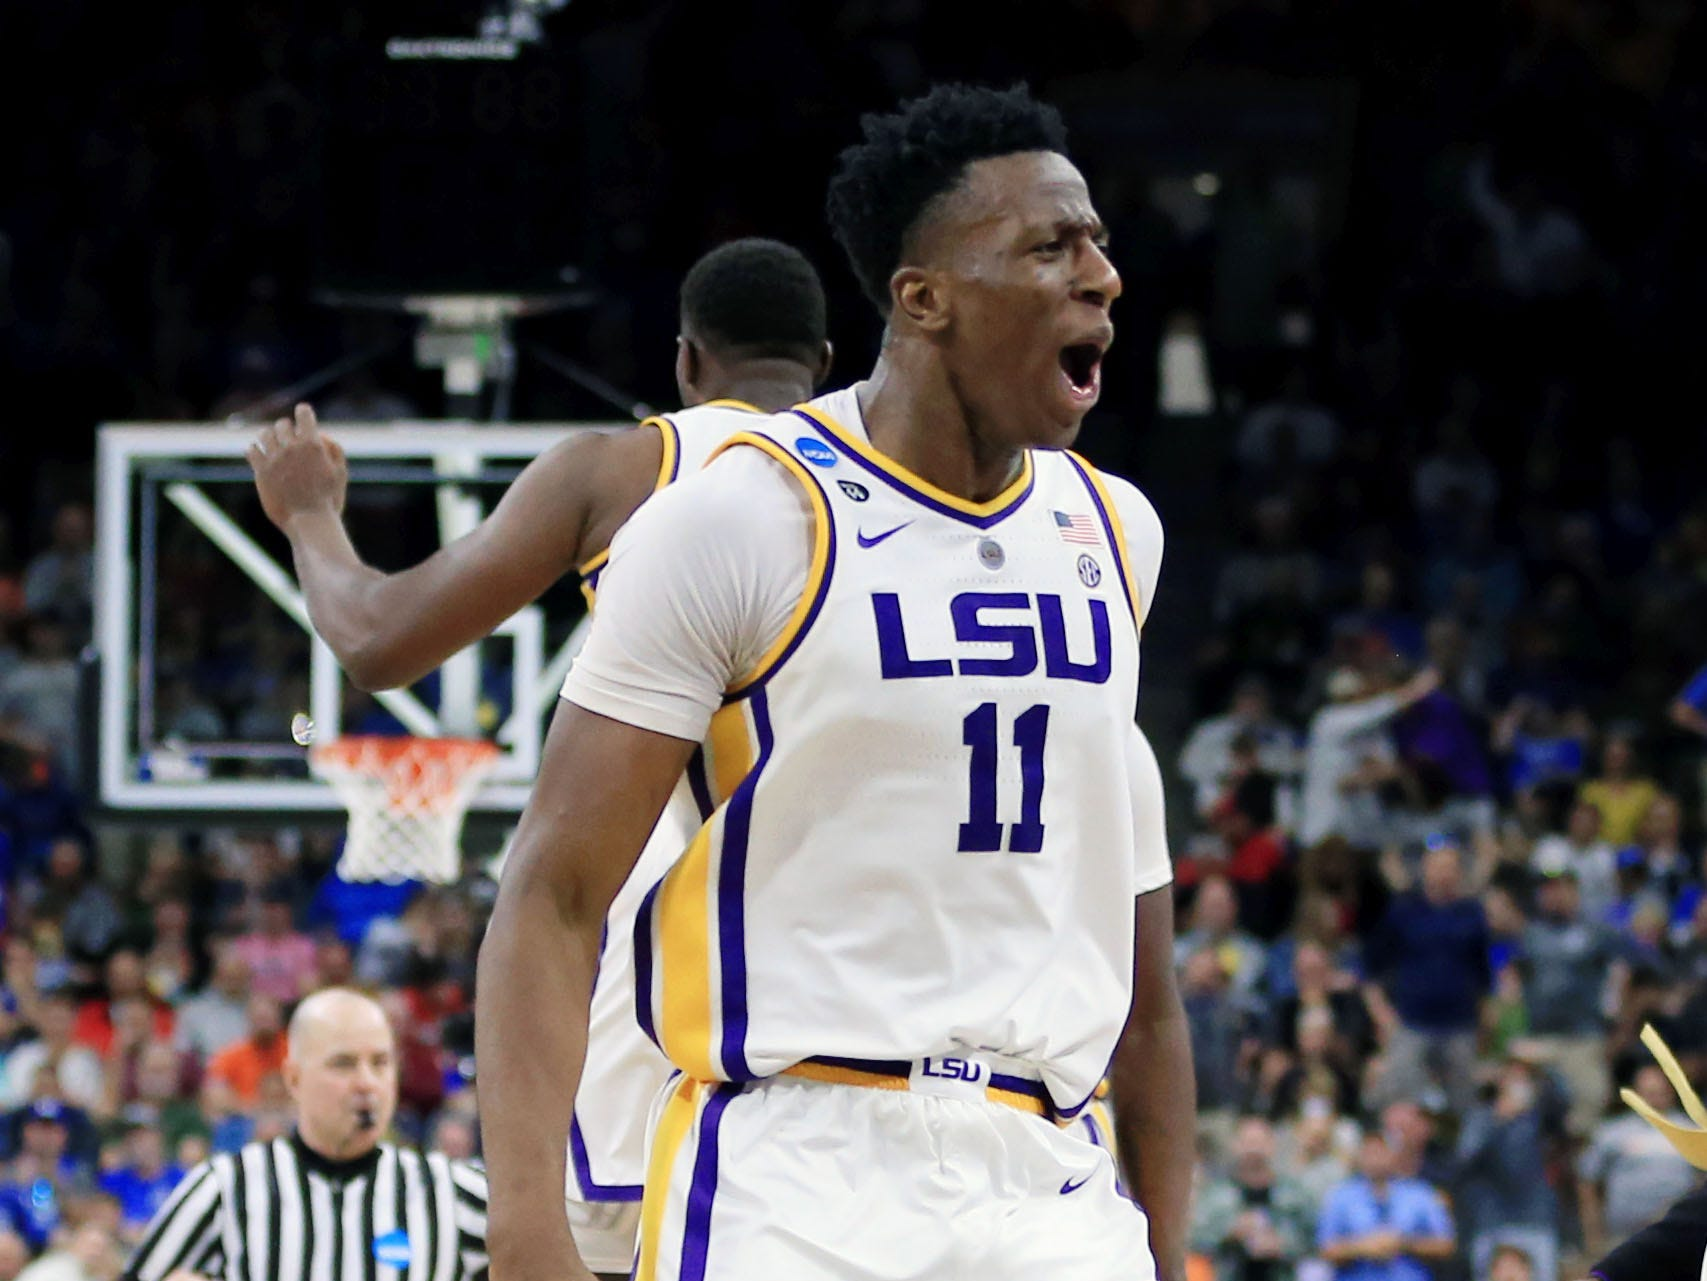 Mar 23, 2019; Jacksonville, FL, USA; LSU Tigers forward Kavell Bigby-Williams (11) celebrates their win over Maryland Terrapins in the second round of the 2019 NCAA Tournament at Jacksonville Veterans Memorial Arena. The LSU Tigers won 69-67. Mandatory Credit: Matt Stamey-USA TODAY Sports